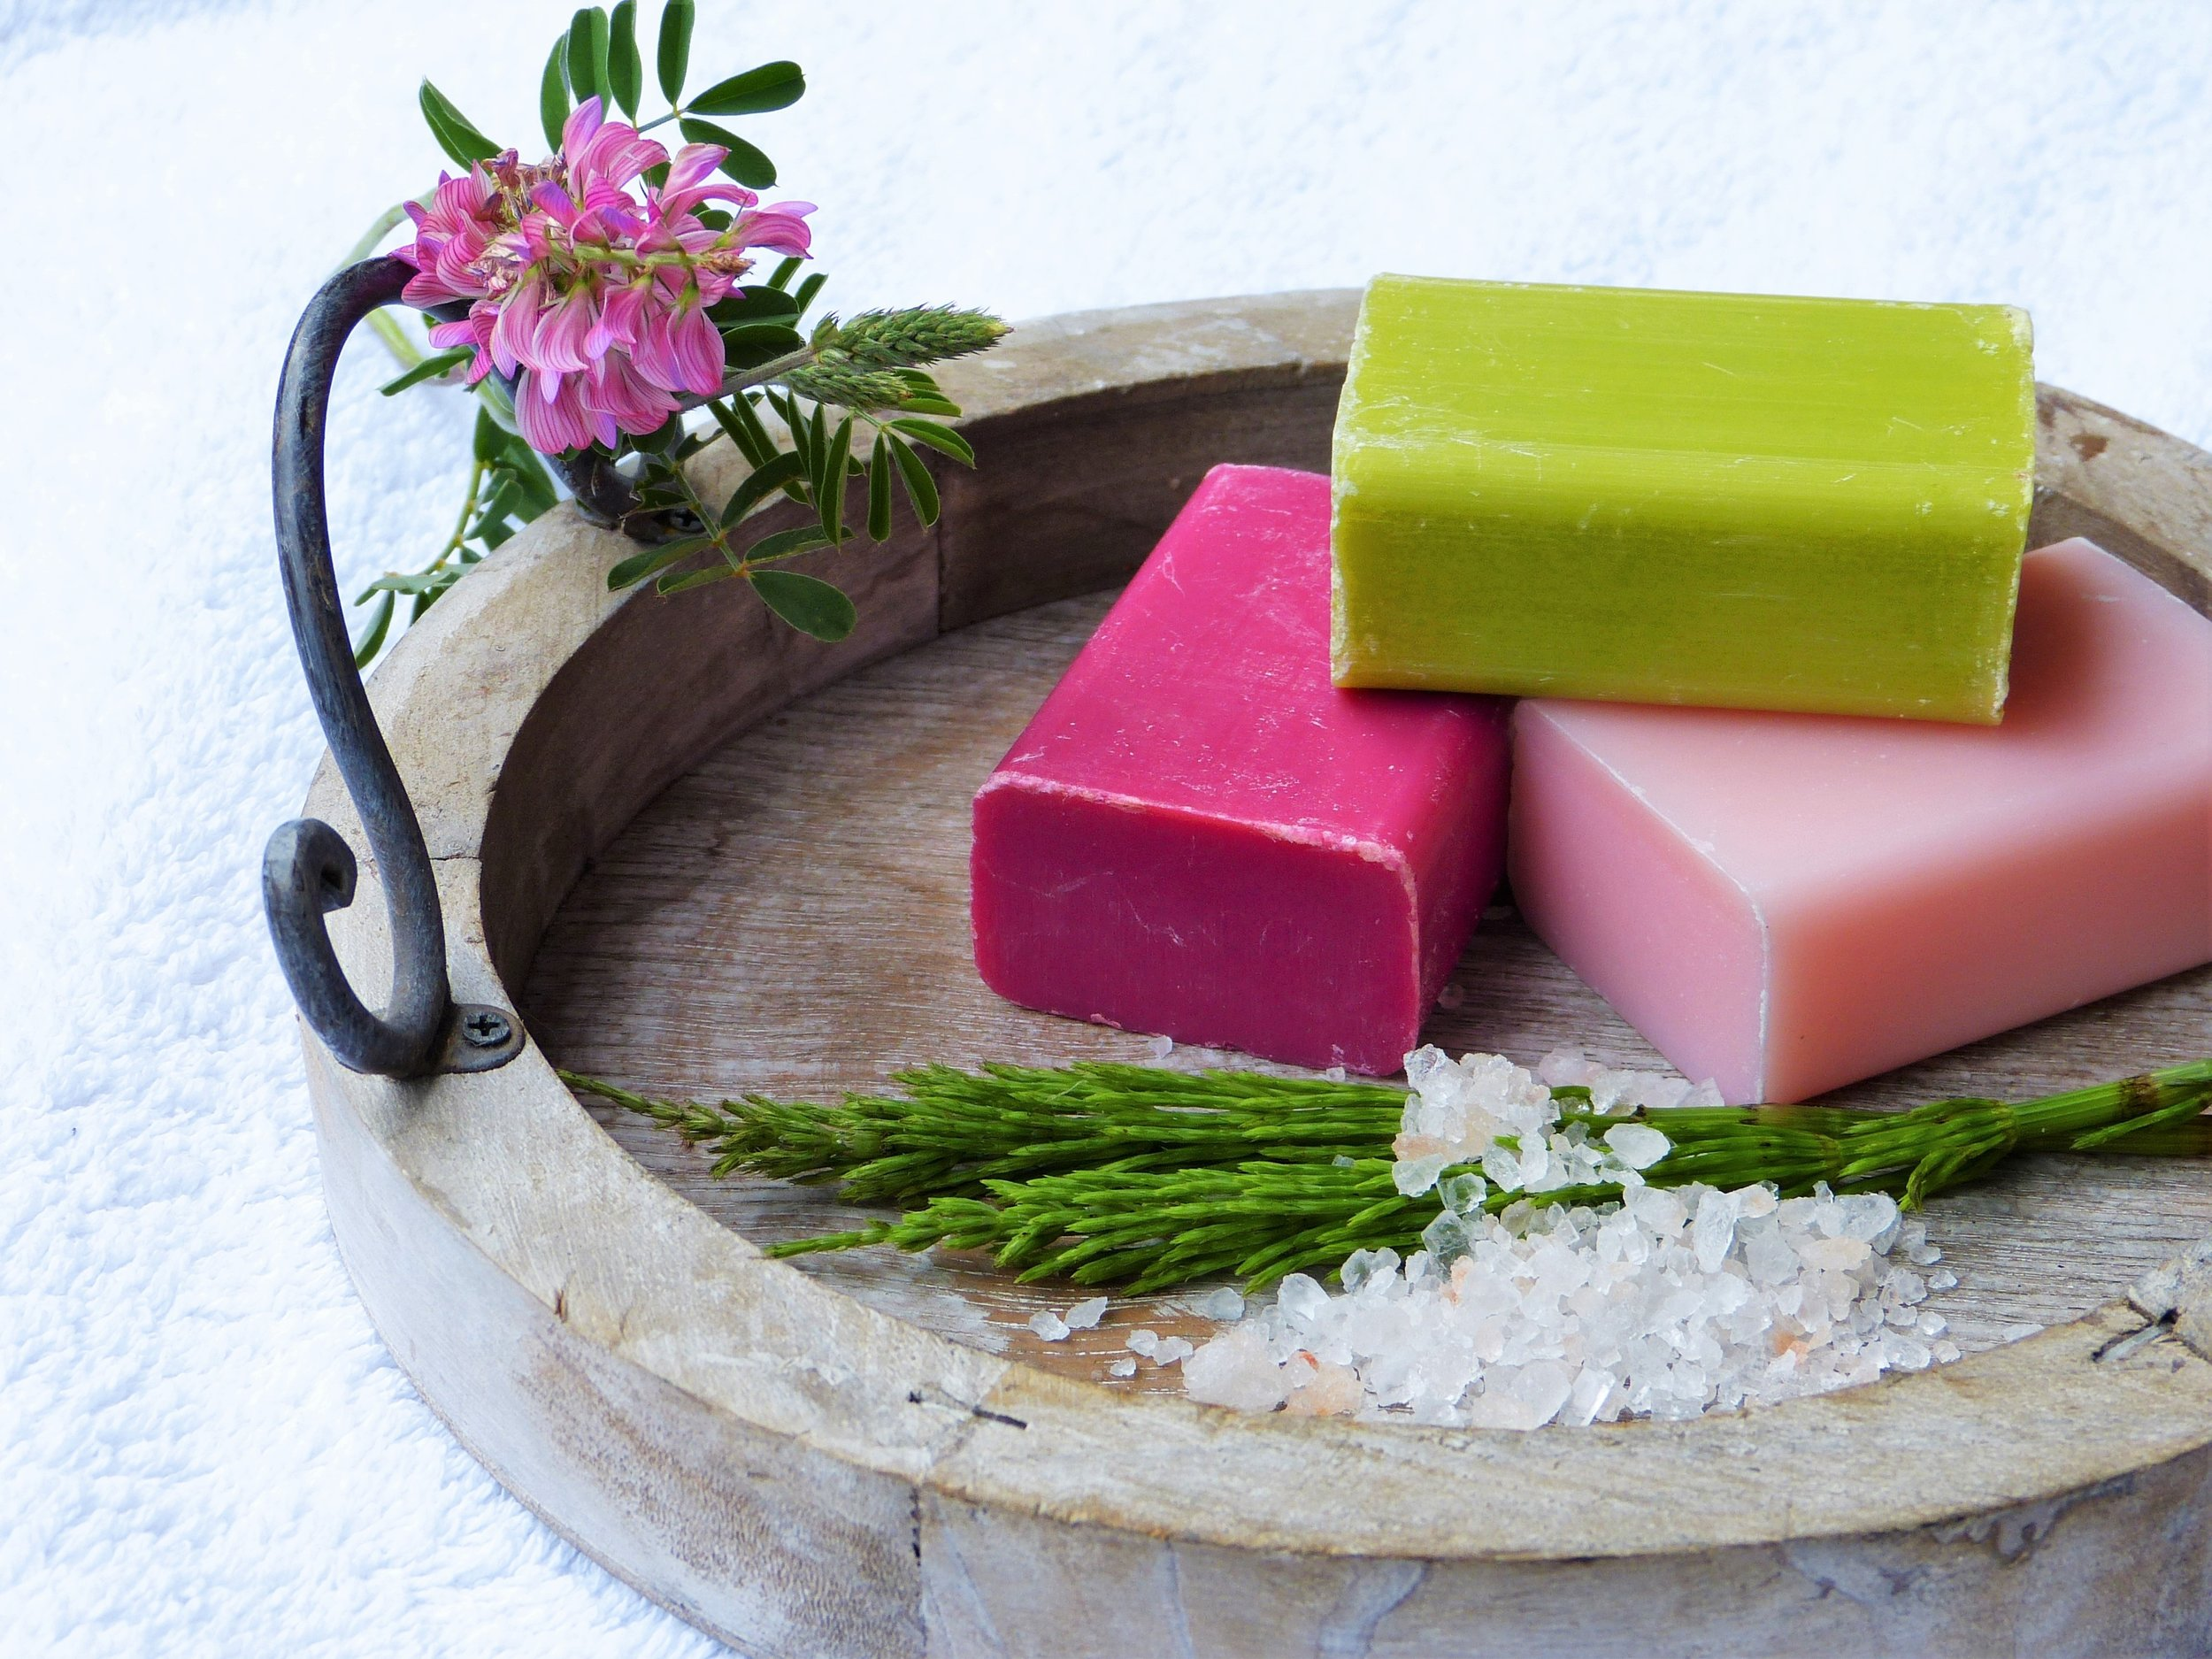 Contact Dermatitis and Soaps